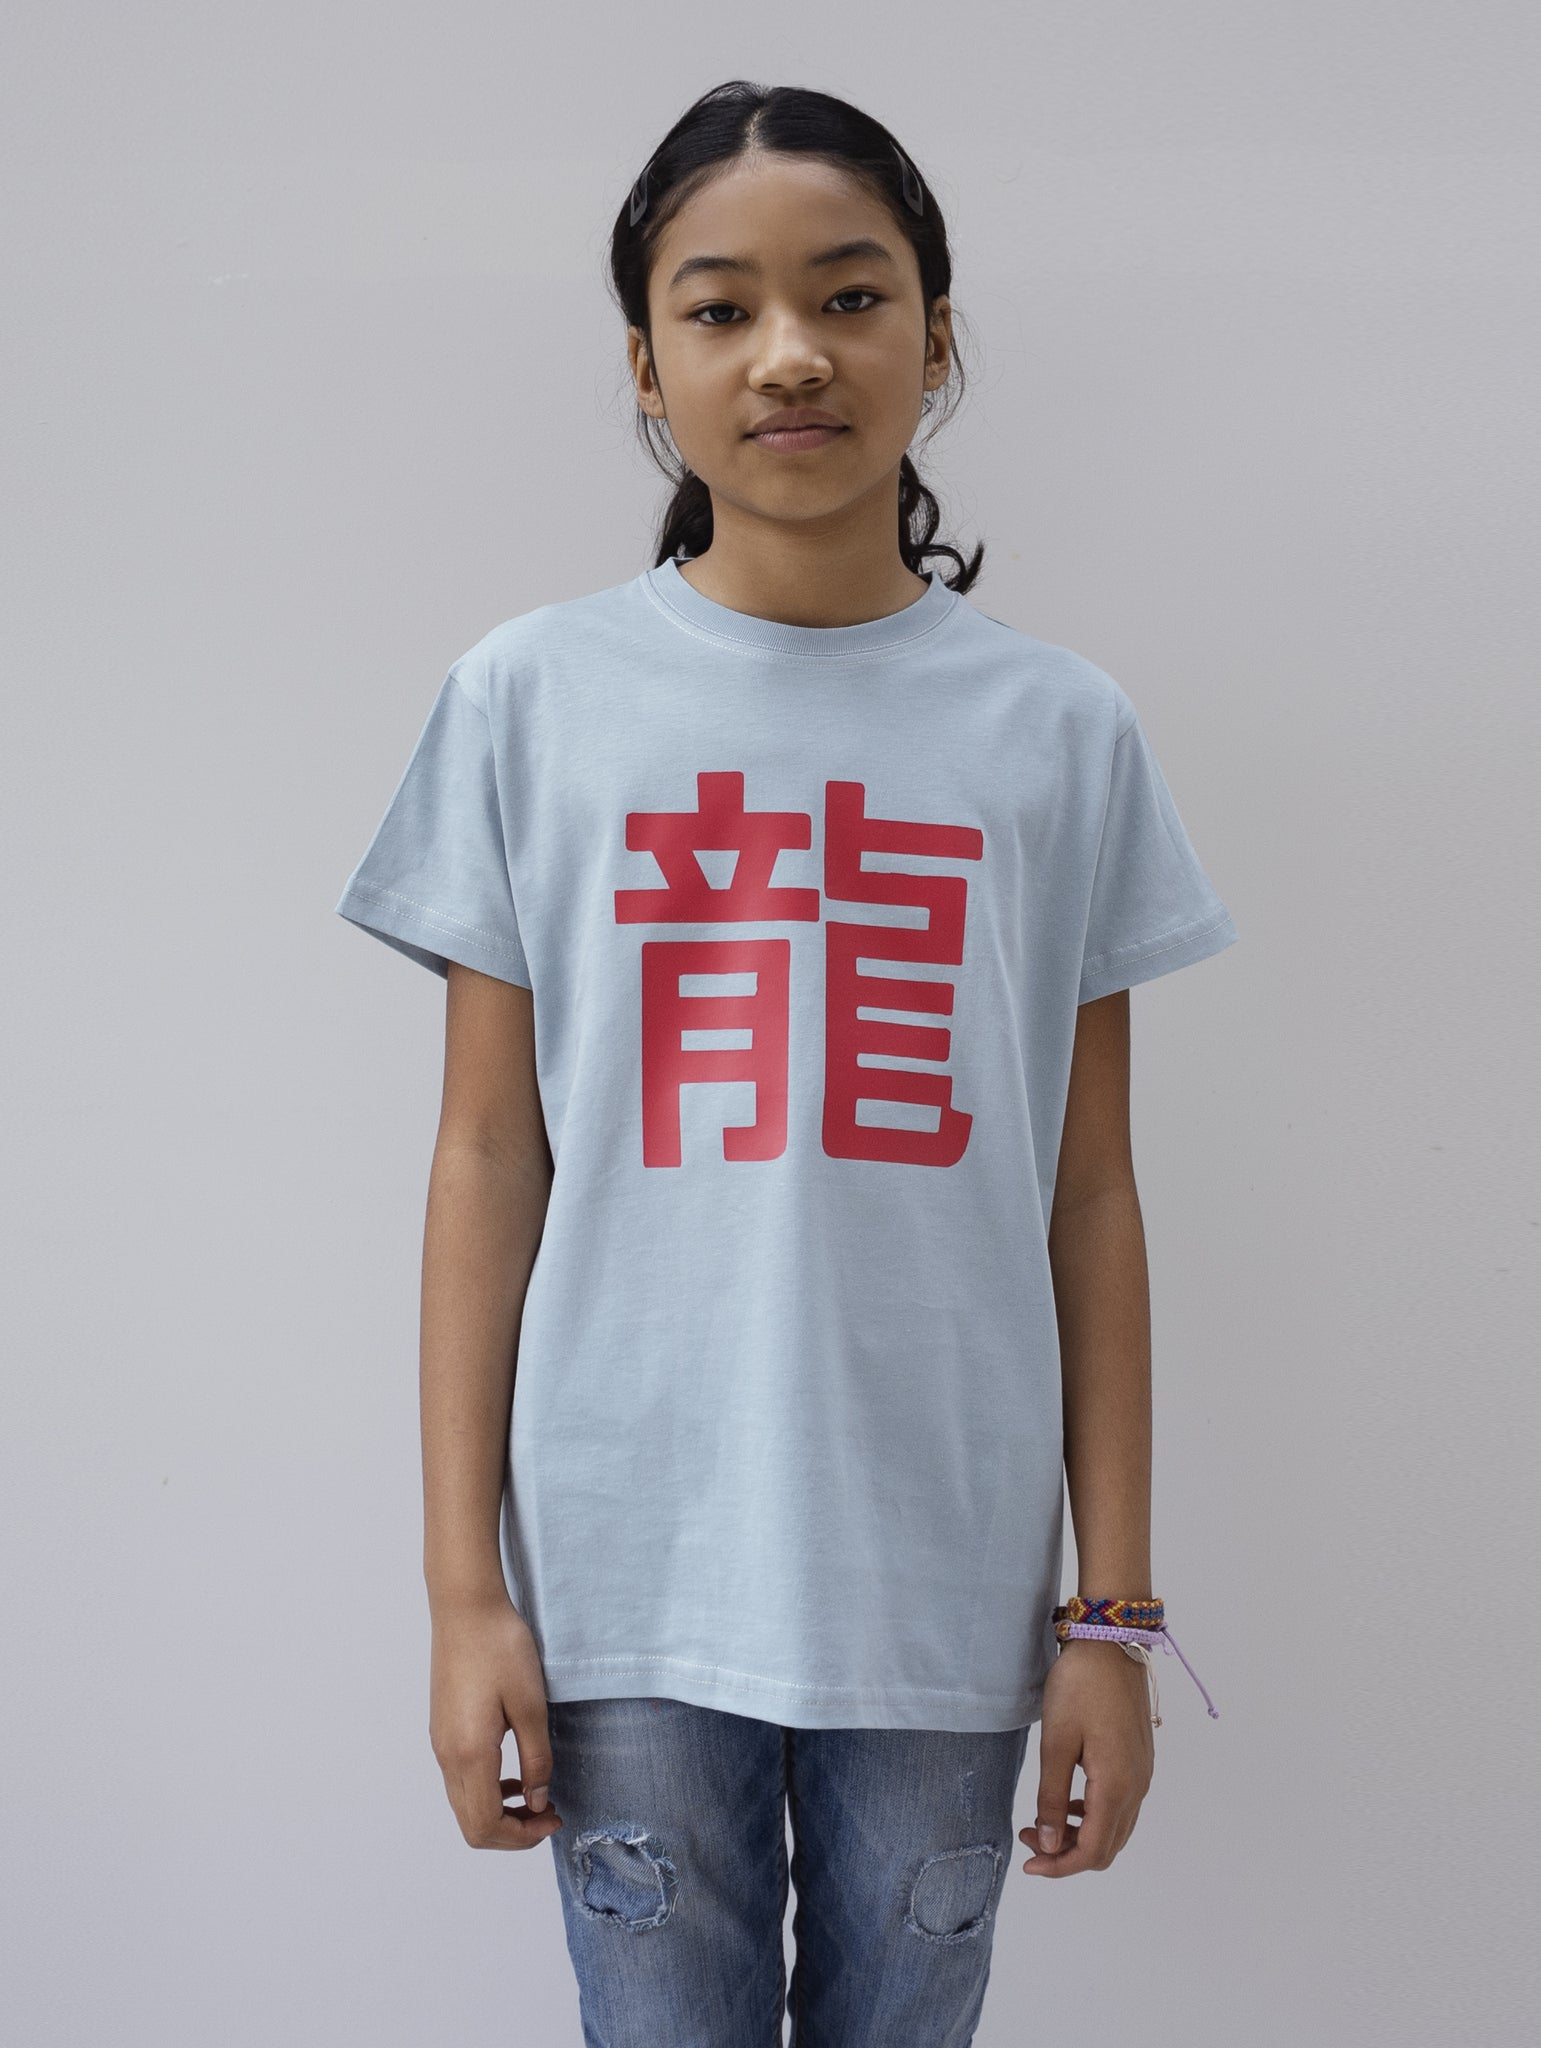 JAPANESE DRAGON T-SHIRT FOR KIDS